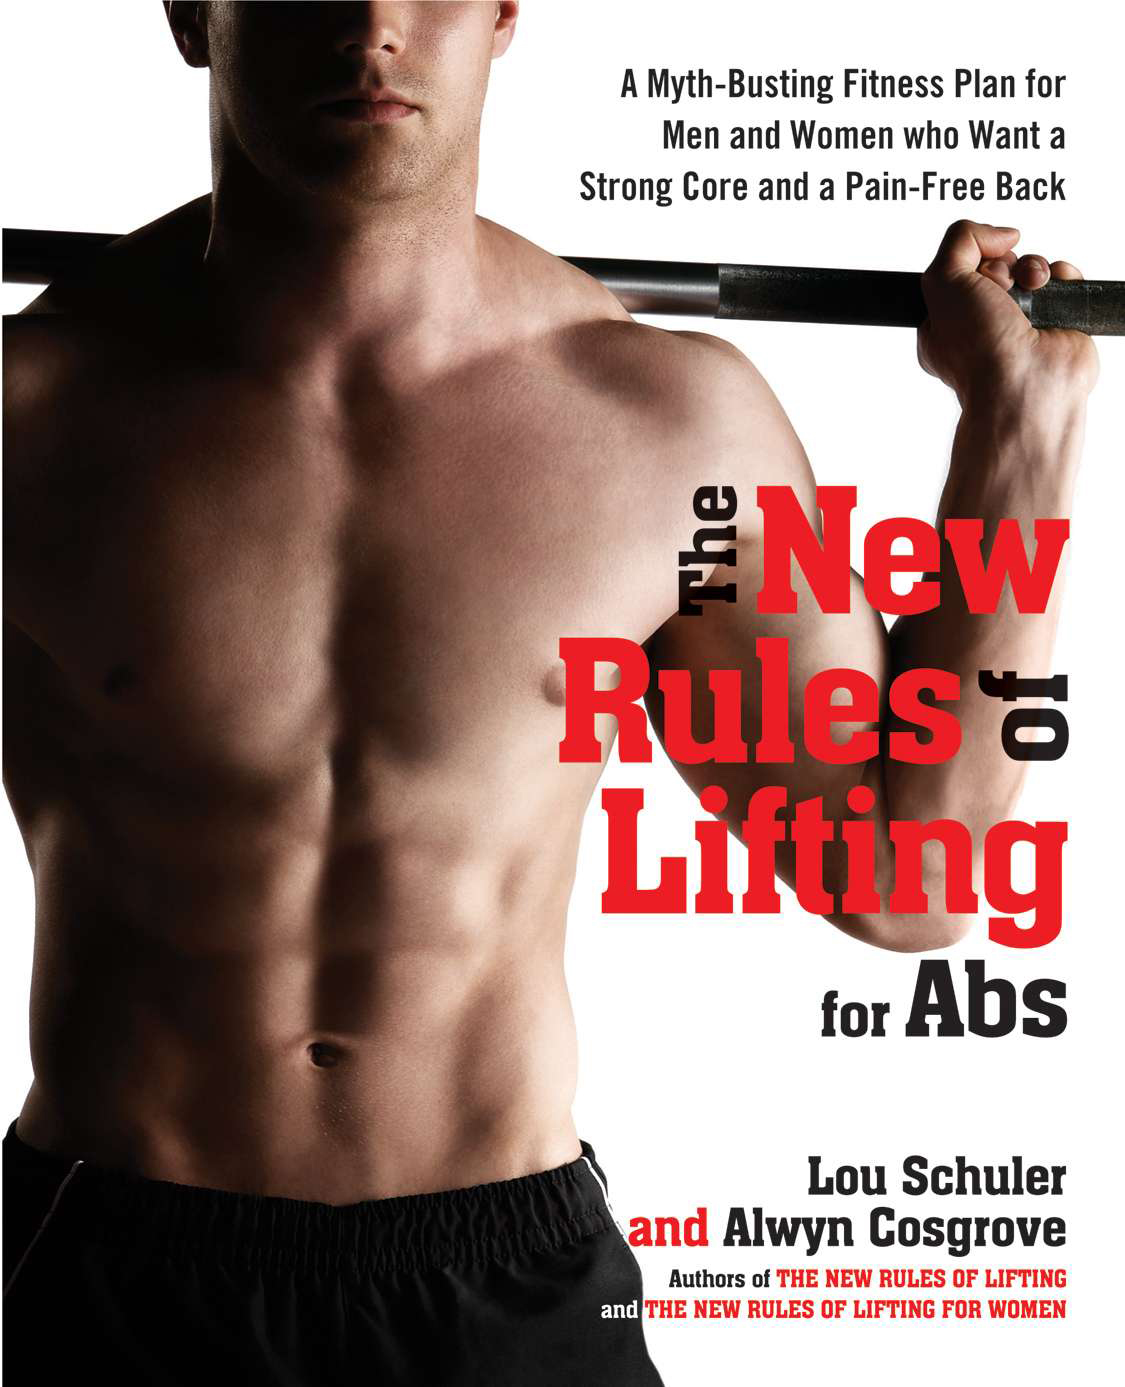 The New Rules of Lifting for Abs By: Alwyn Cosgrove,Lou Schuler